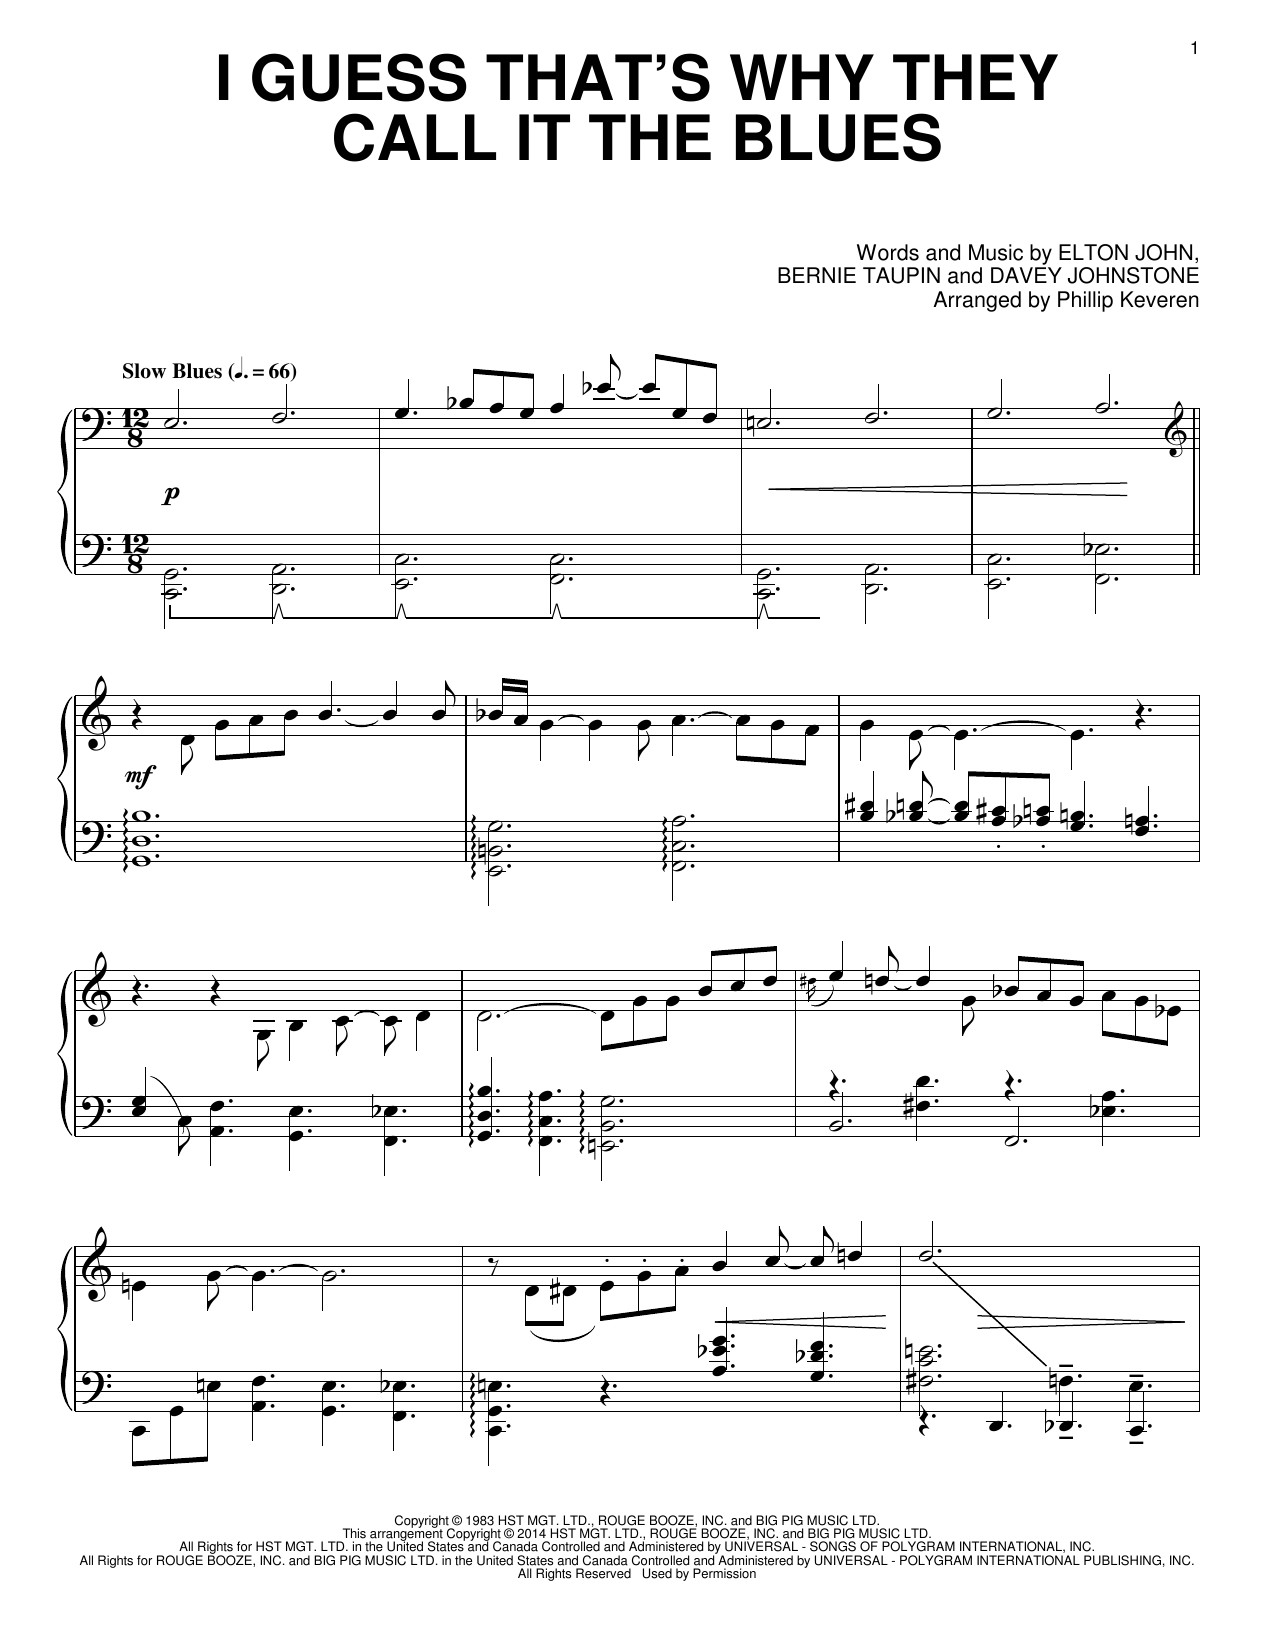 I Guess That's Why They Call It The Blues Sheet Music